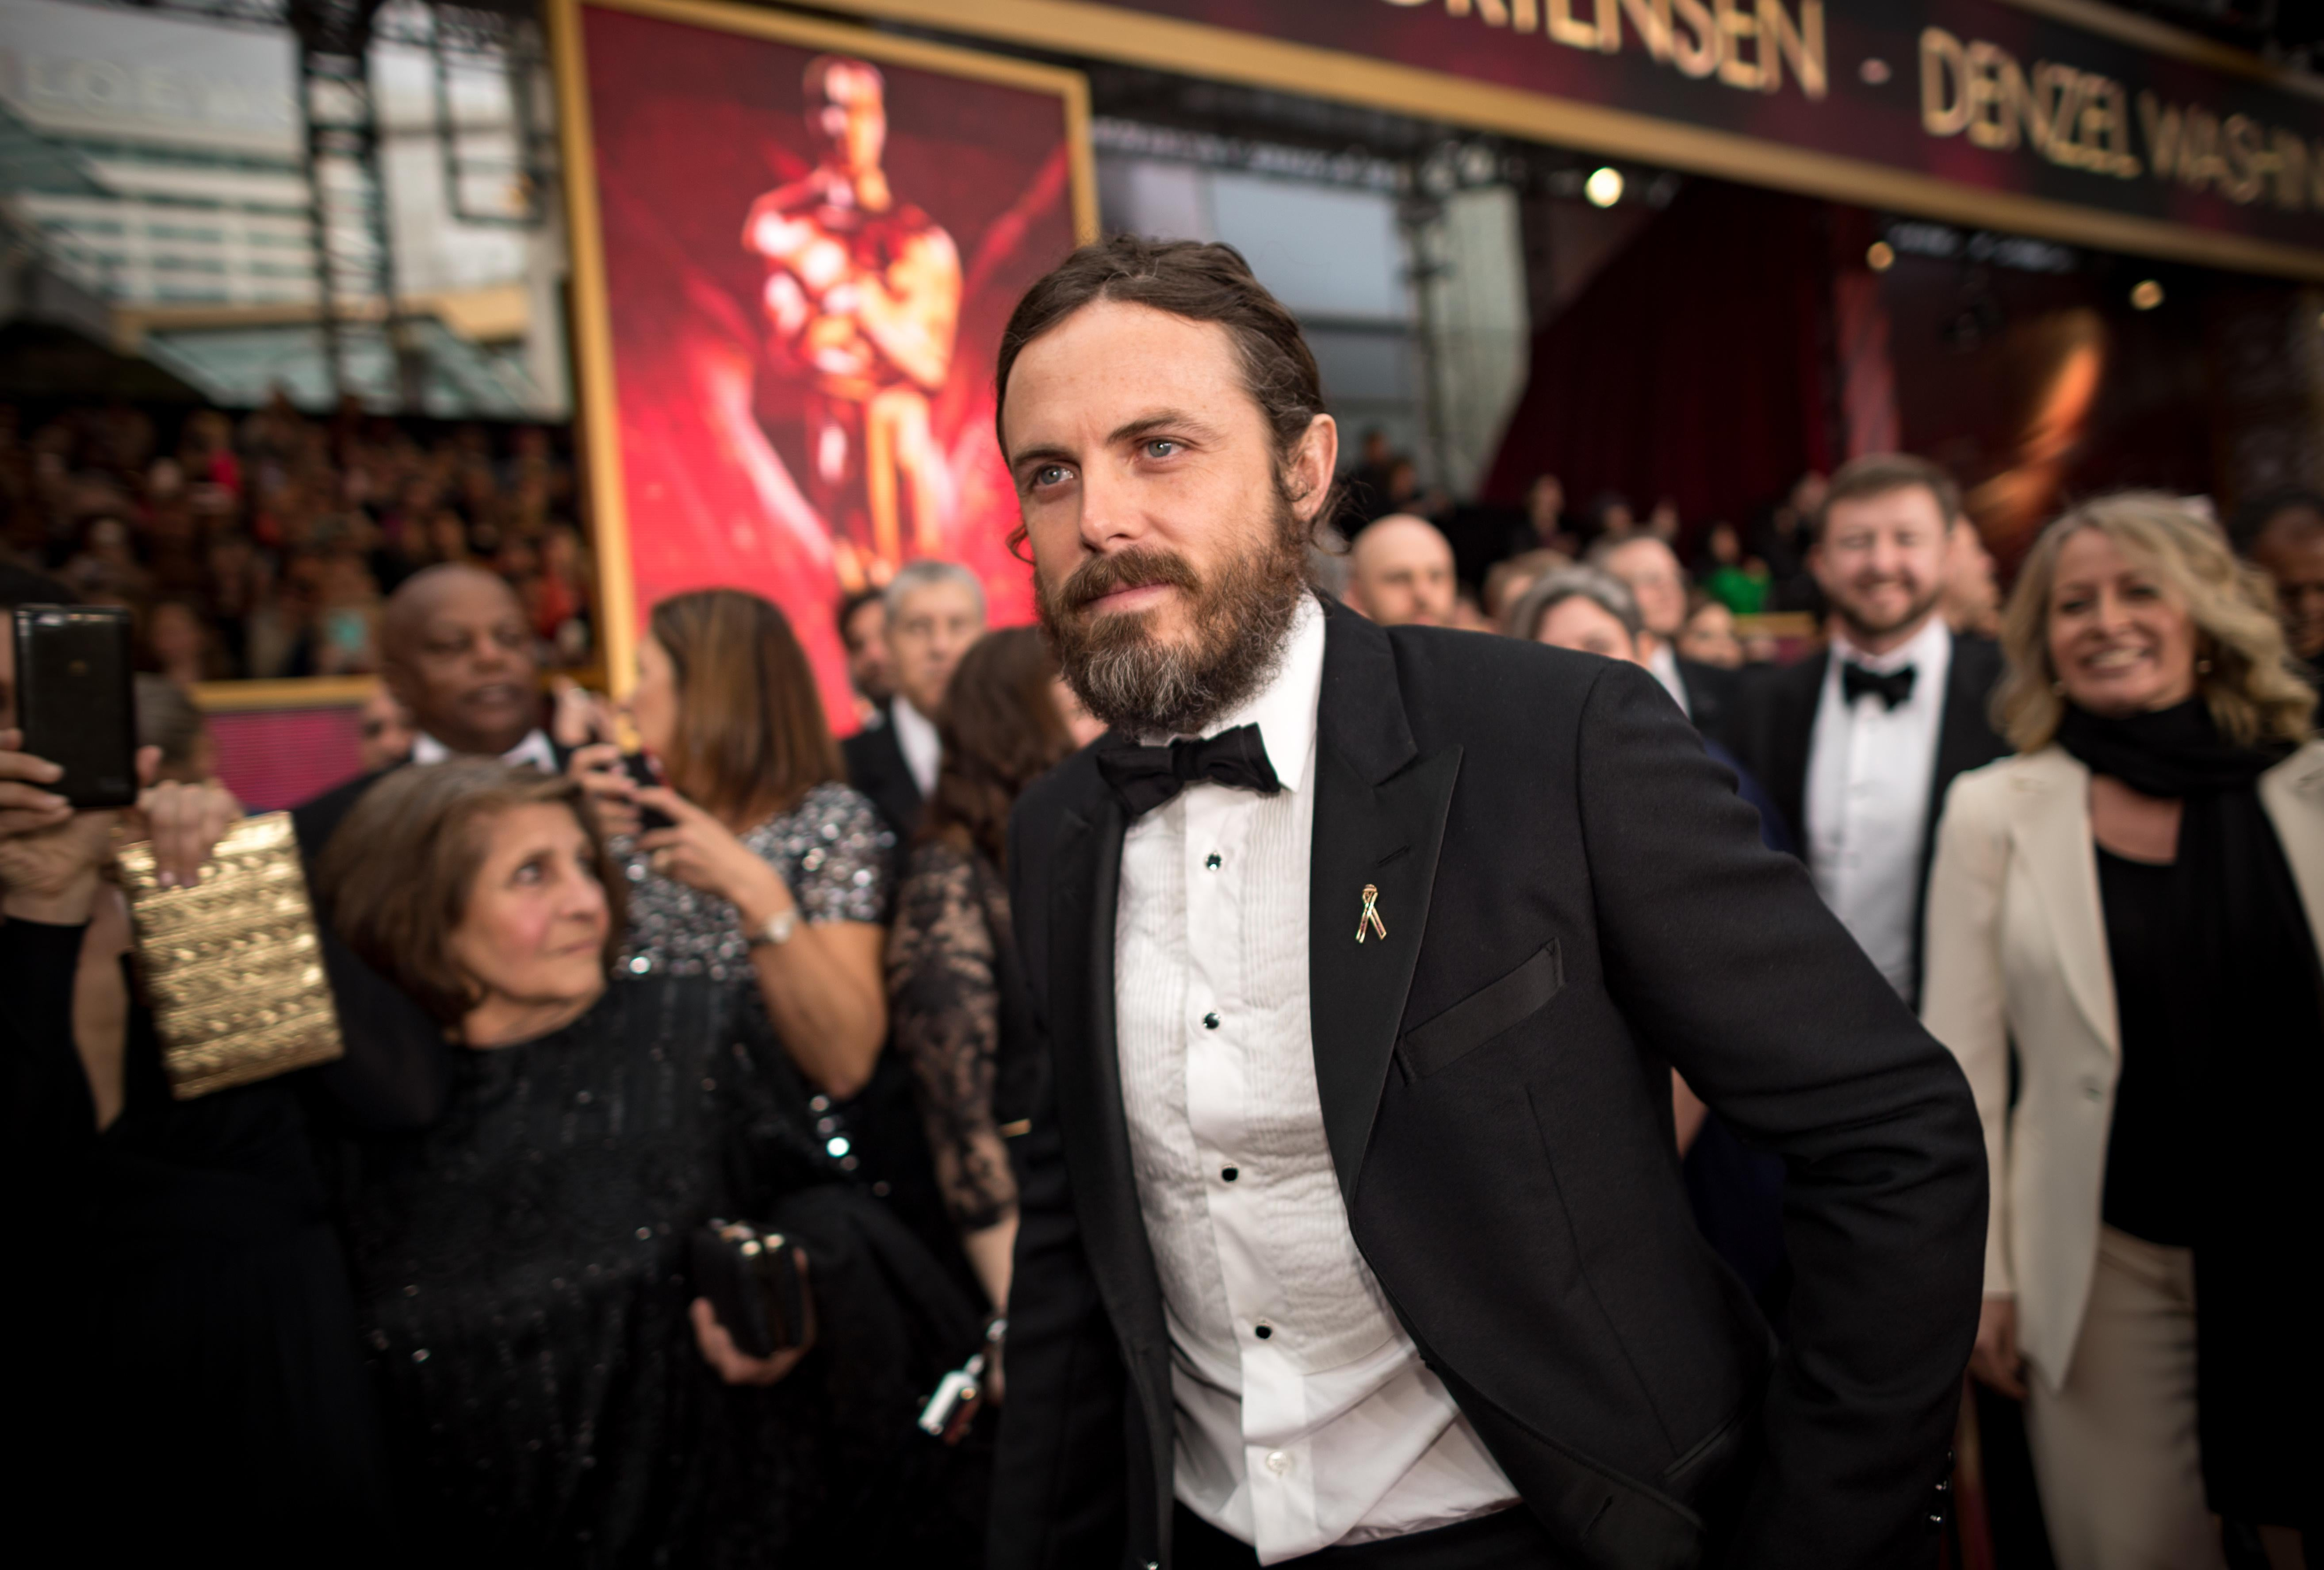 Casey Affleck attends the 89th Annual Academy Awards at Hollywood & Highland Center on Feb. 26 in Hollywood, California.